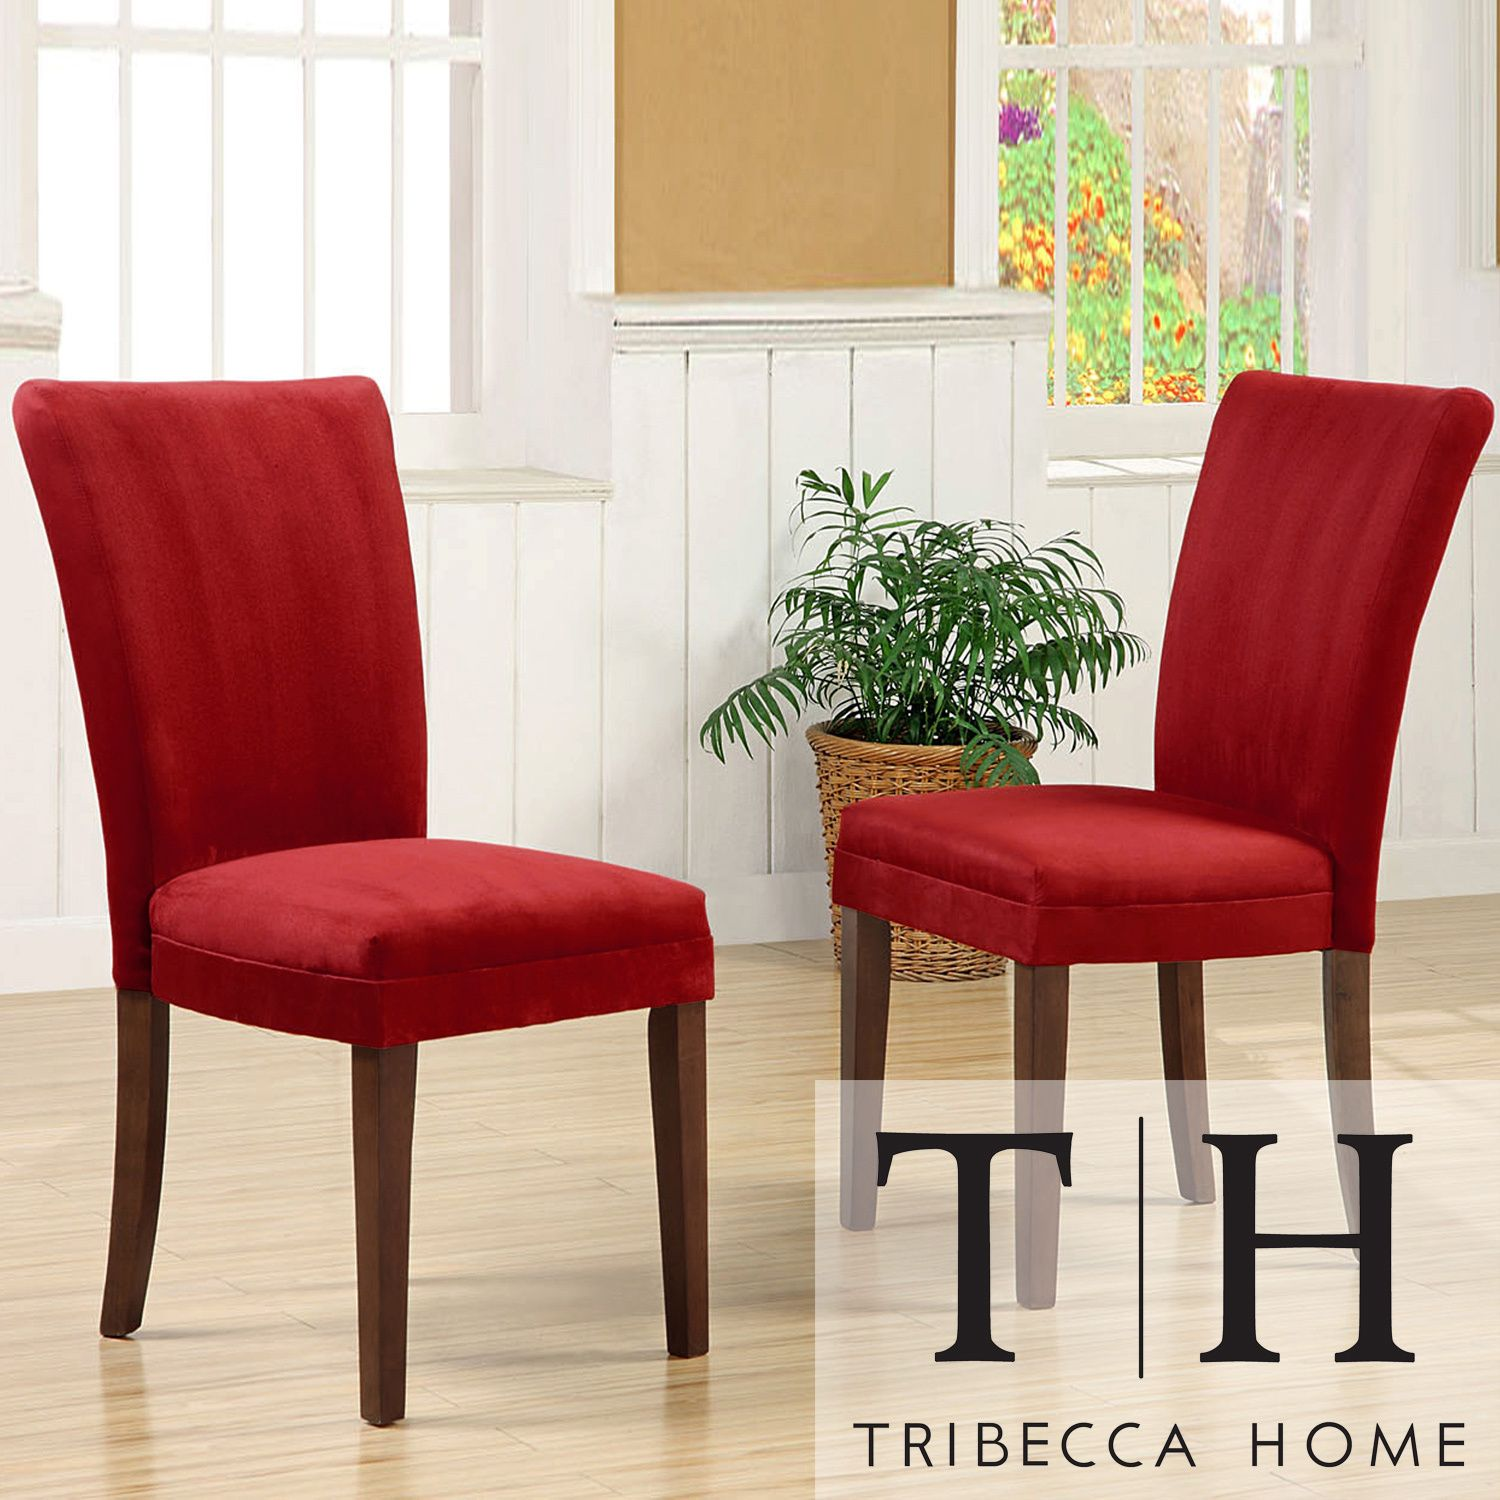 let the casual modernity of the set of two parson cranberry red